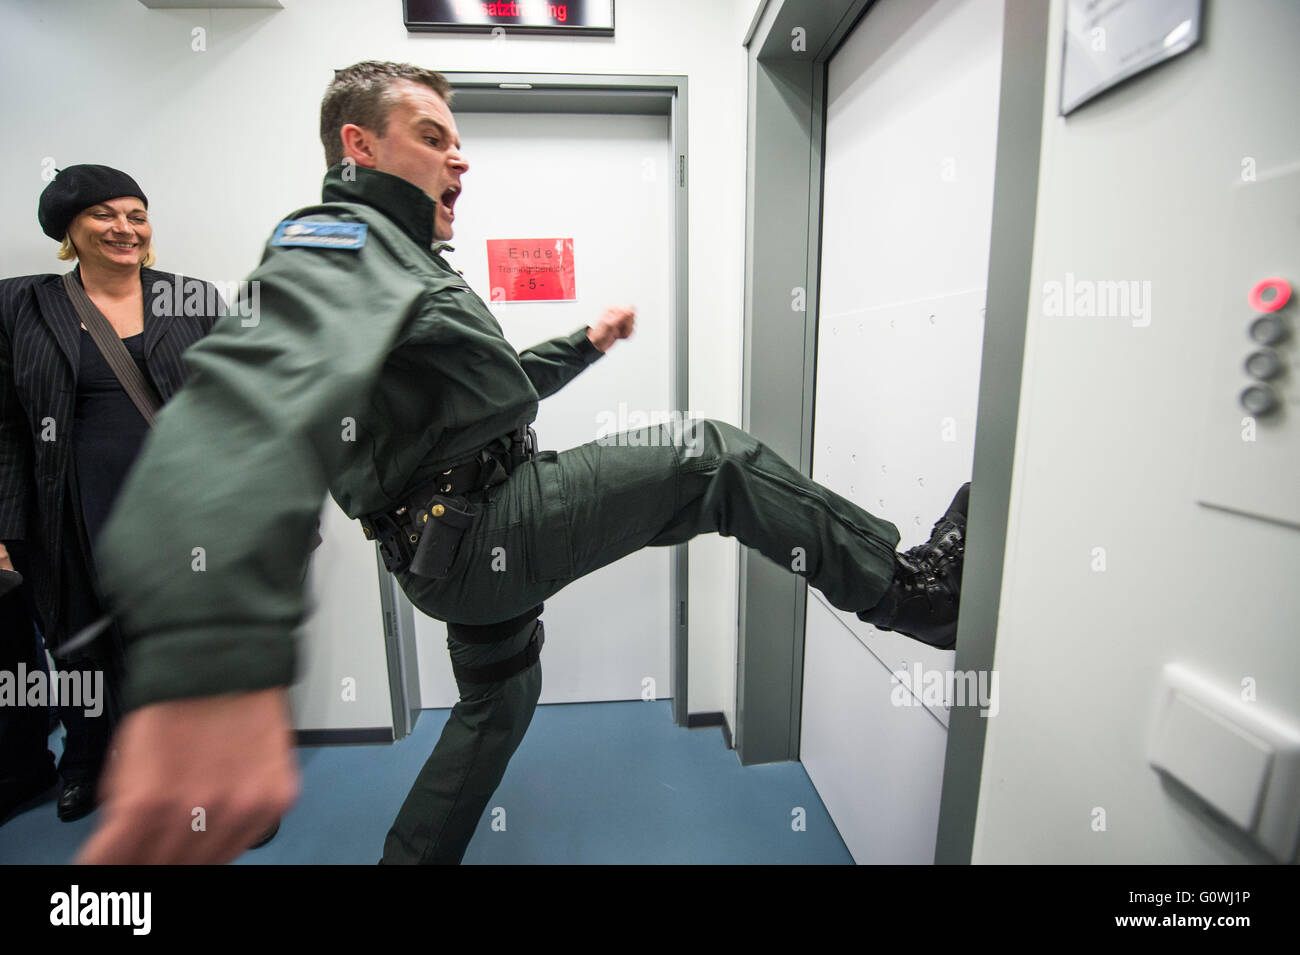 Superieur A Police Officer Demonstrates How To Kick In A Door In The Line Of Duty In  The New Police Regional Training Center (RTZ) In Dortmund, Germany, 04 May  2016.